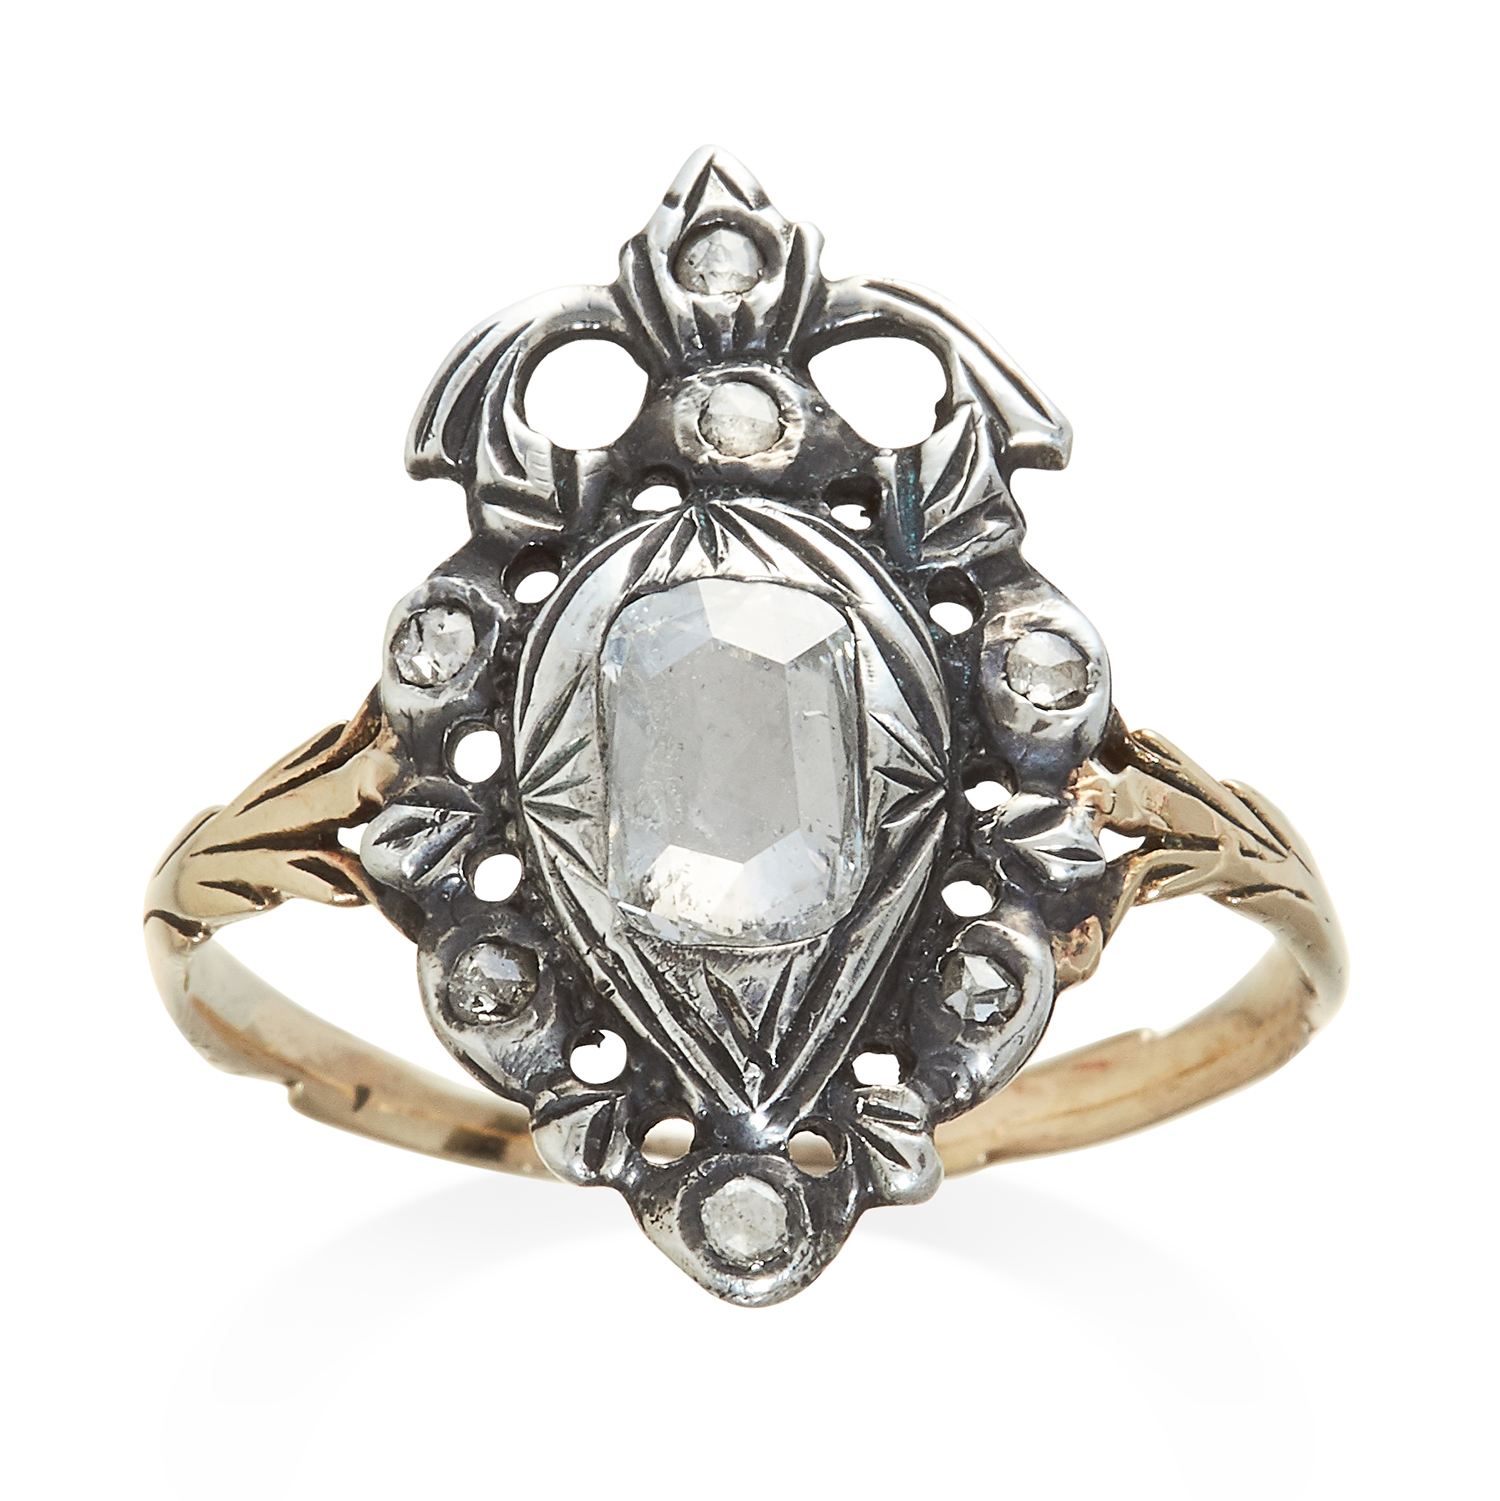 Los 320 - AN ANTIQUE DIAMOND RING, EARLY 19TH CENTURY in yellow gold and silver, set with rose cut diamonds,